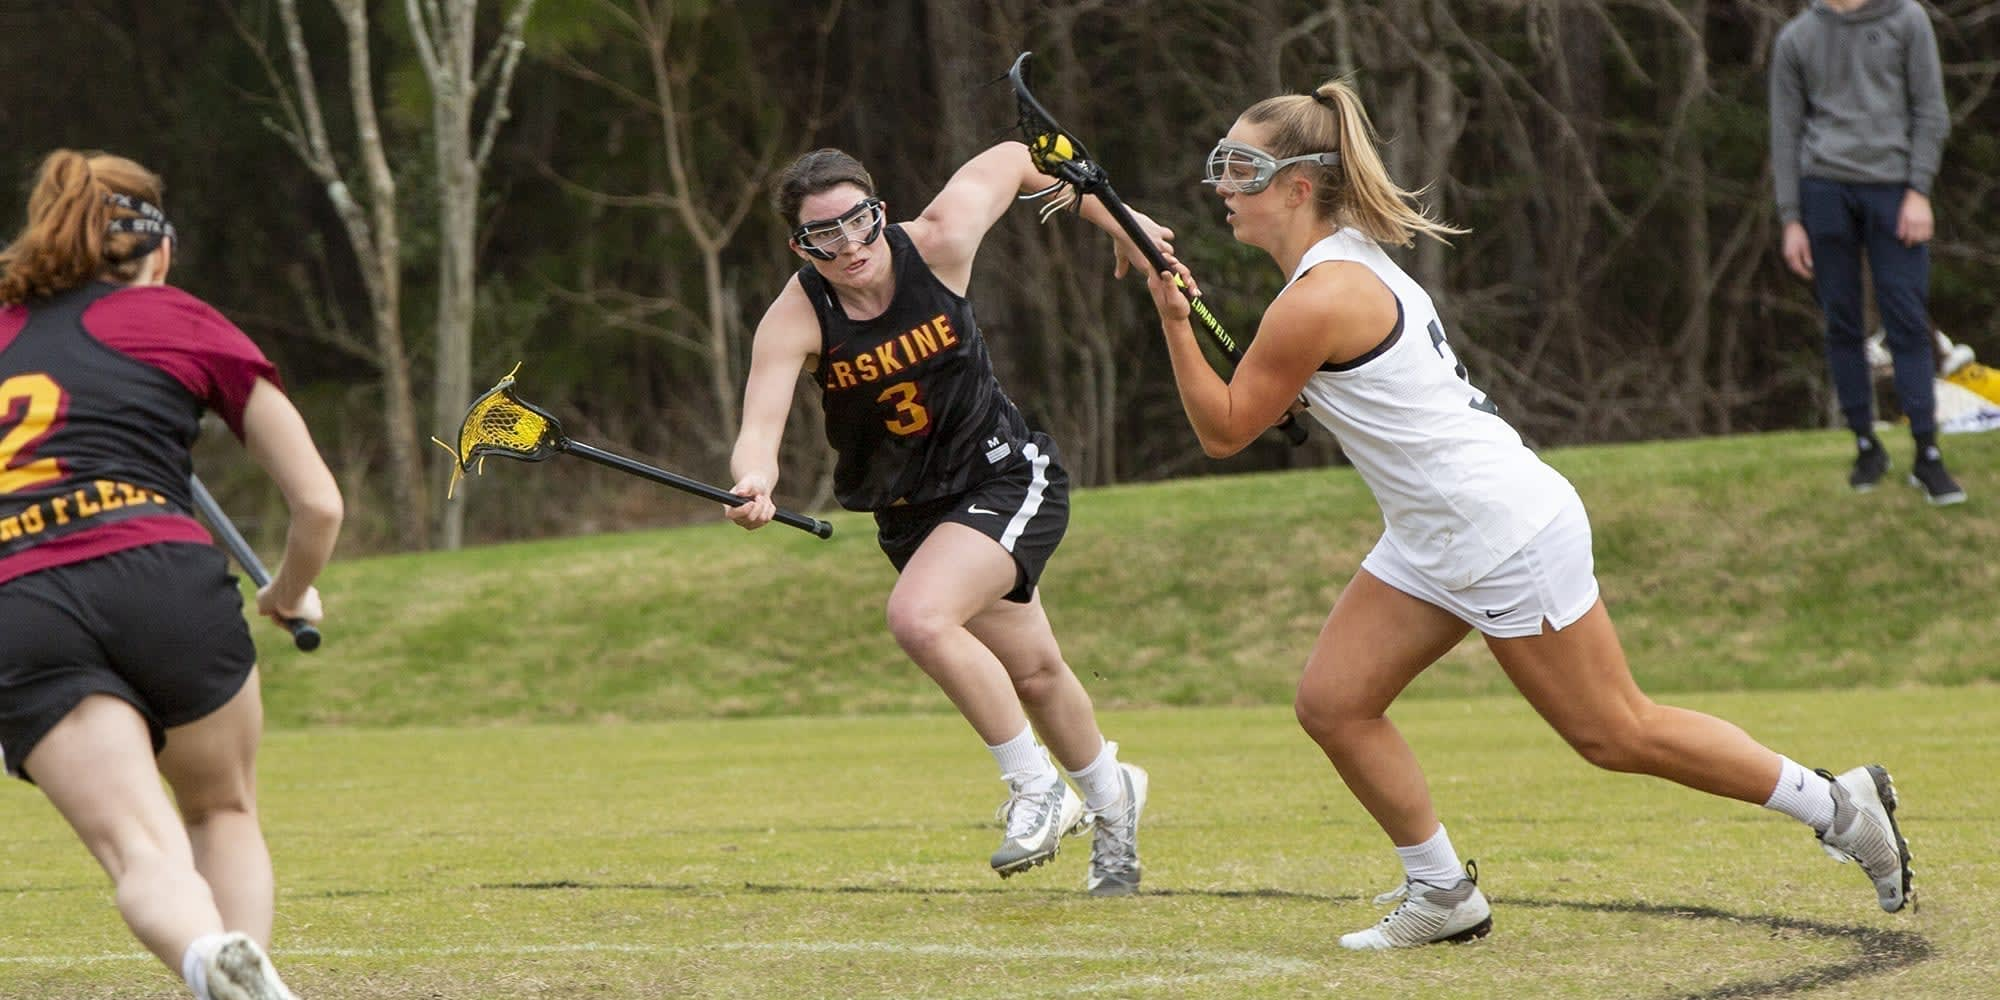 sydney knego savannah college of art and design naia women's college lacrosse